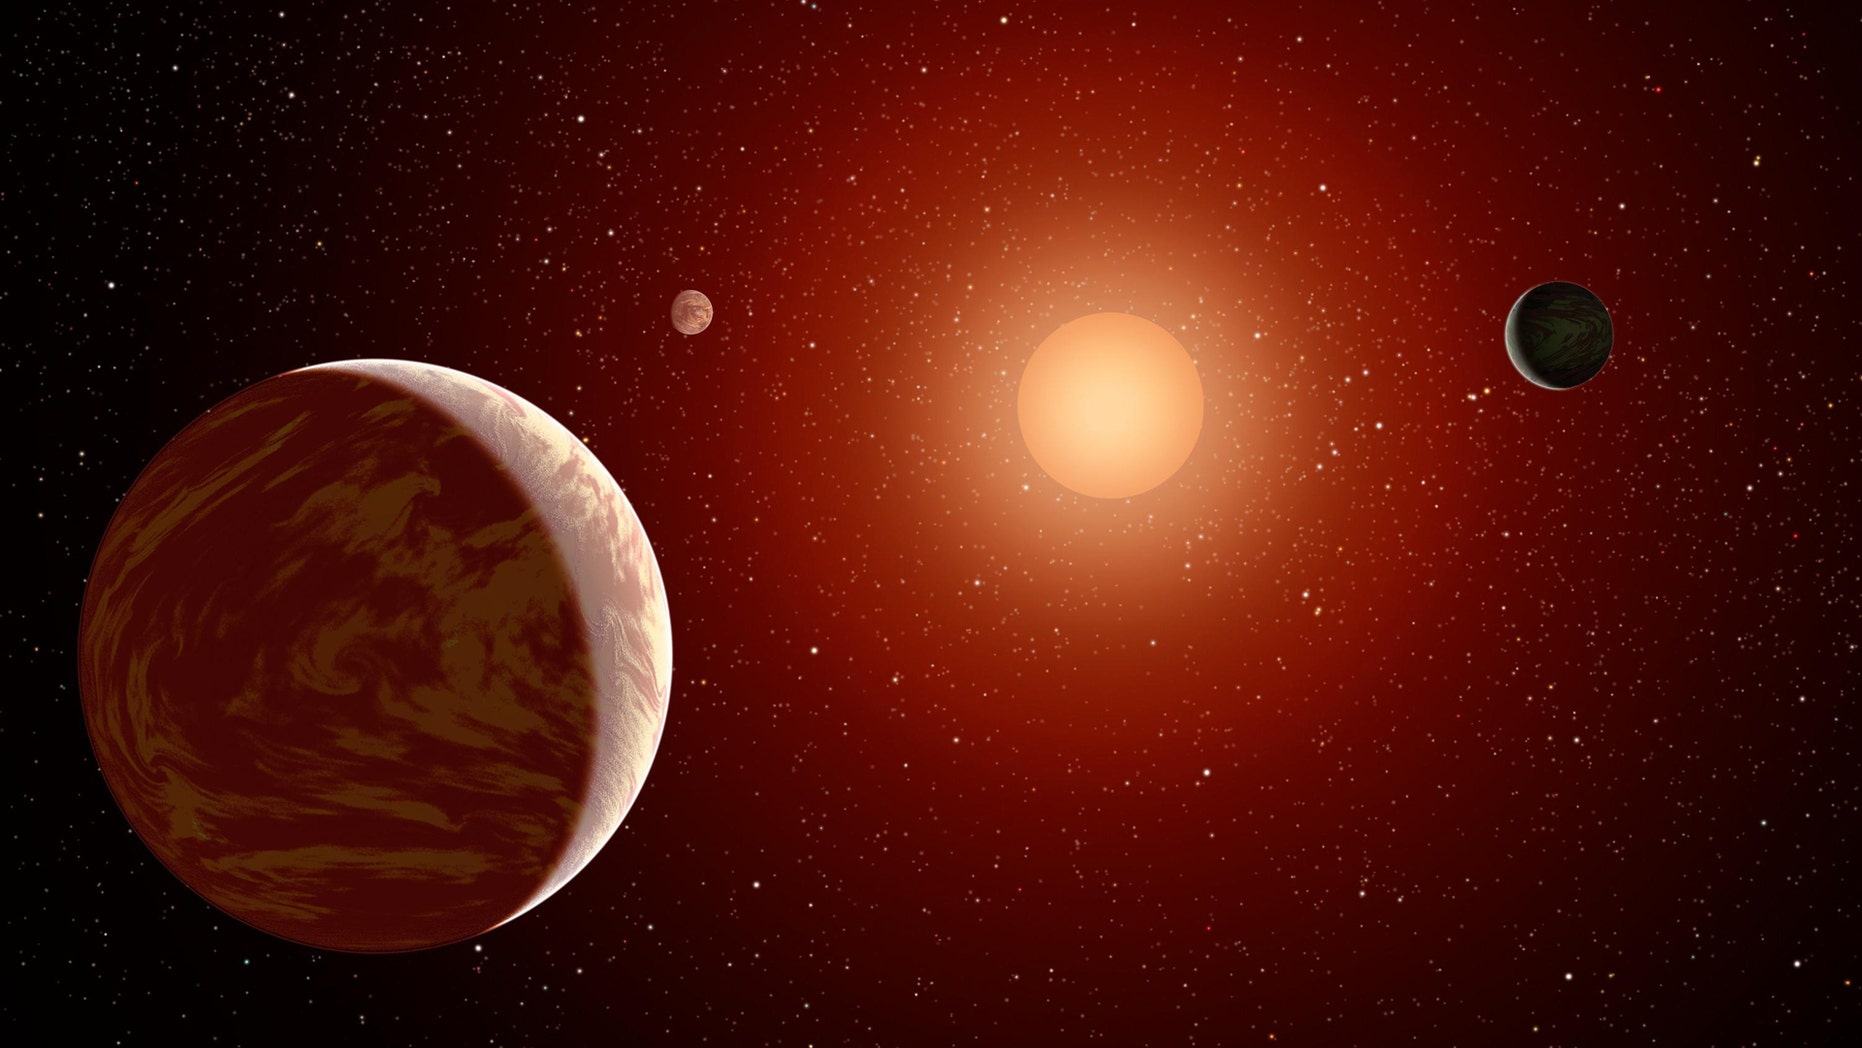 Artist's impression of a M dwarf star surrounded by planets. (Credit: NASA Astrobiology Institute)